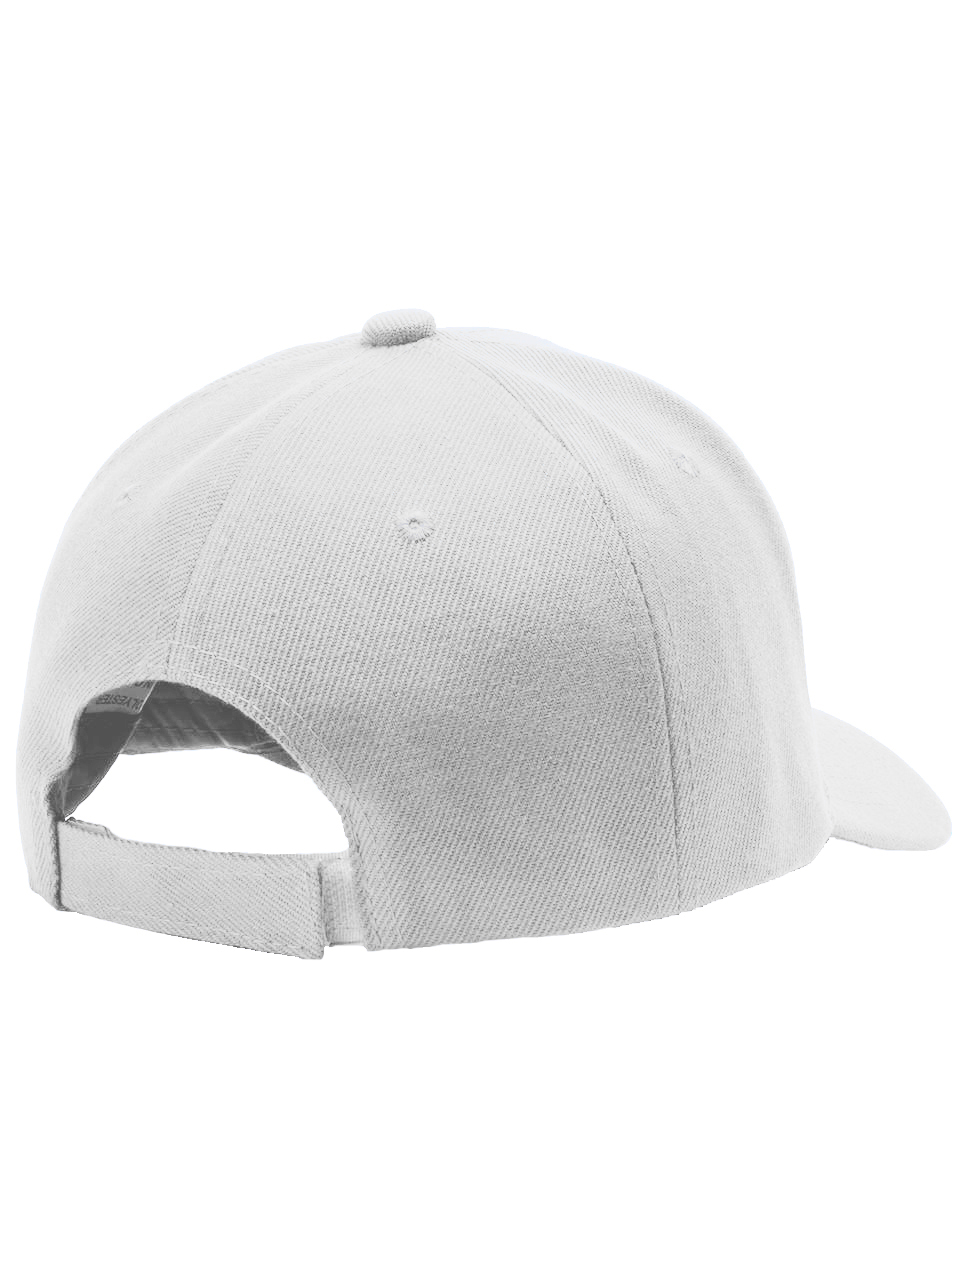 TopHeadwear Blank Kids Youth Baseball Adjustable Hook and Loop Closure Hat